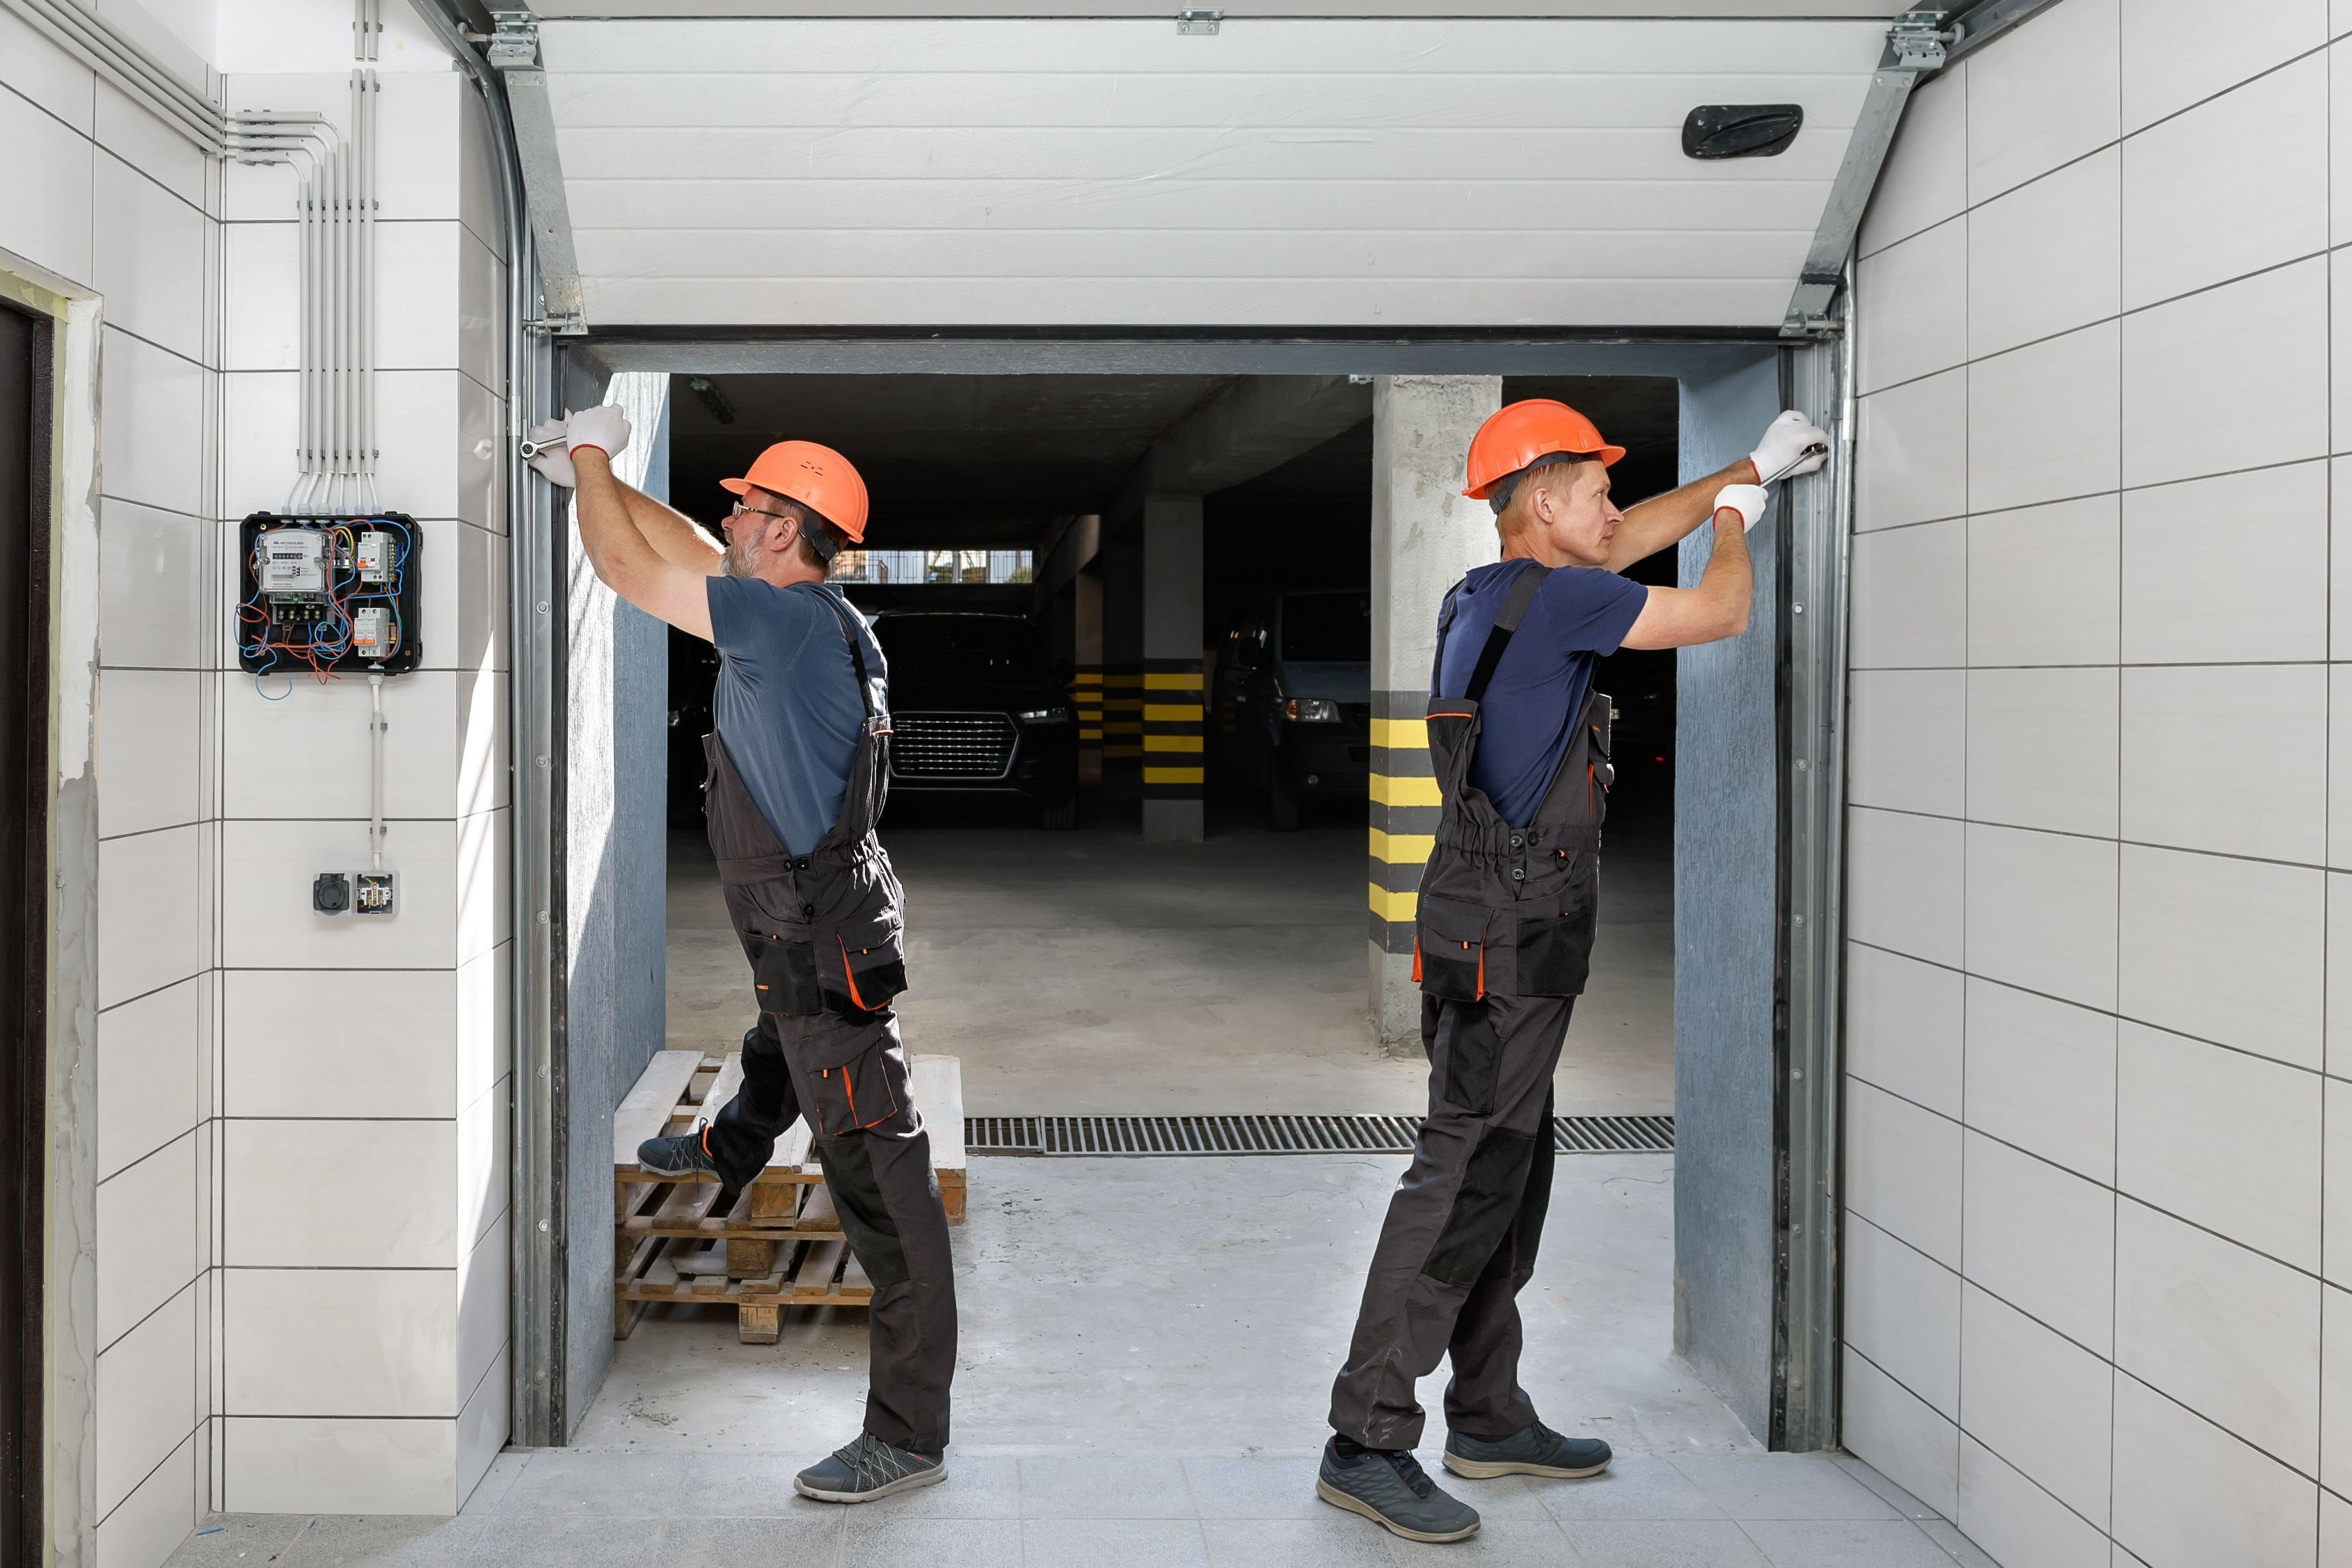 two technicians replacing garage door rollers in a parking garage